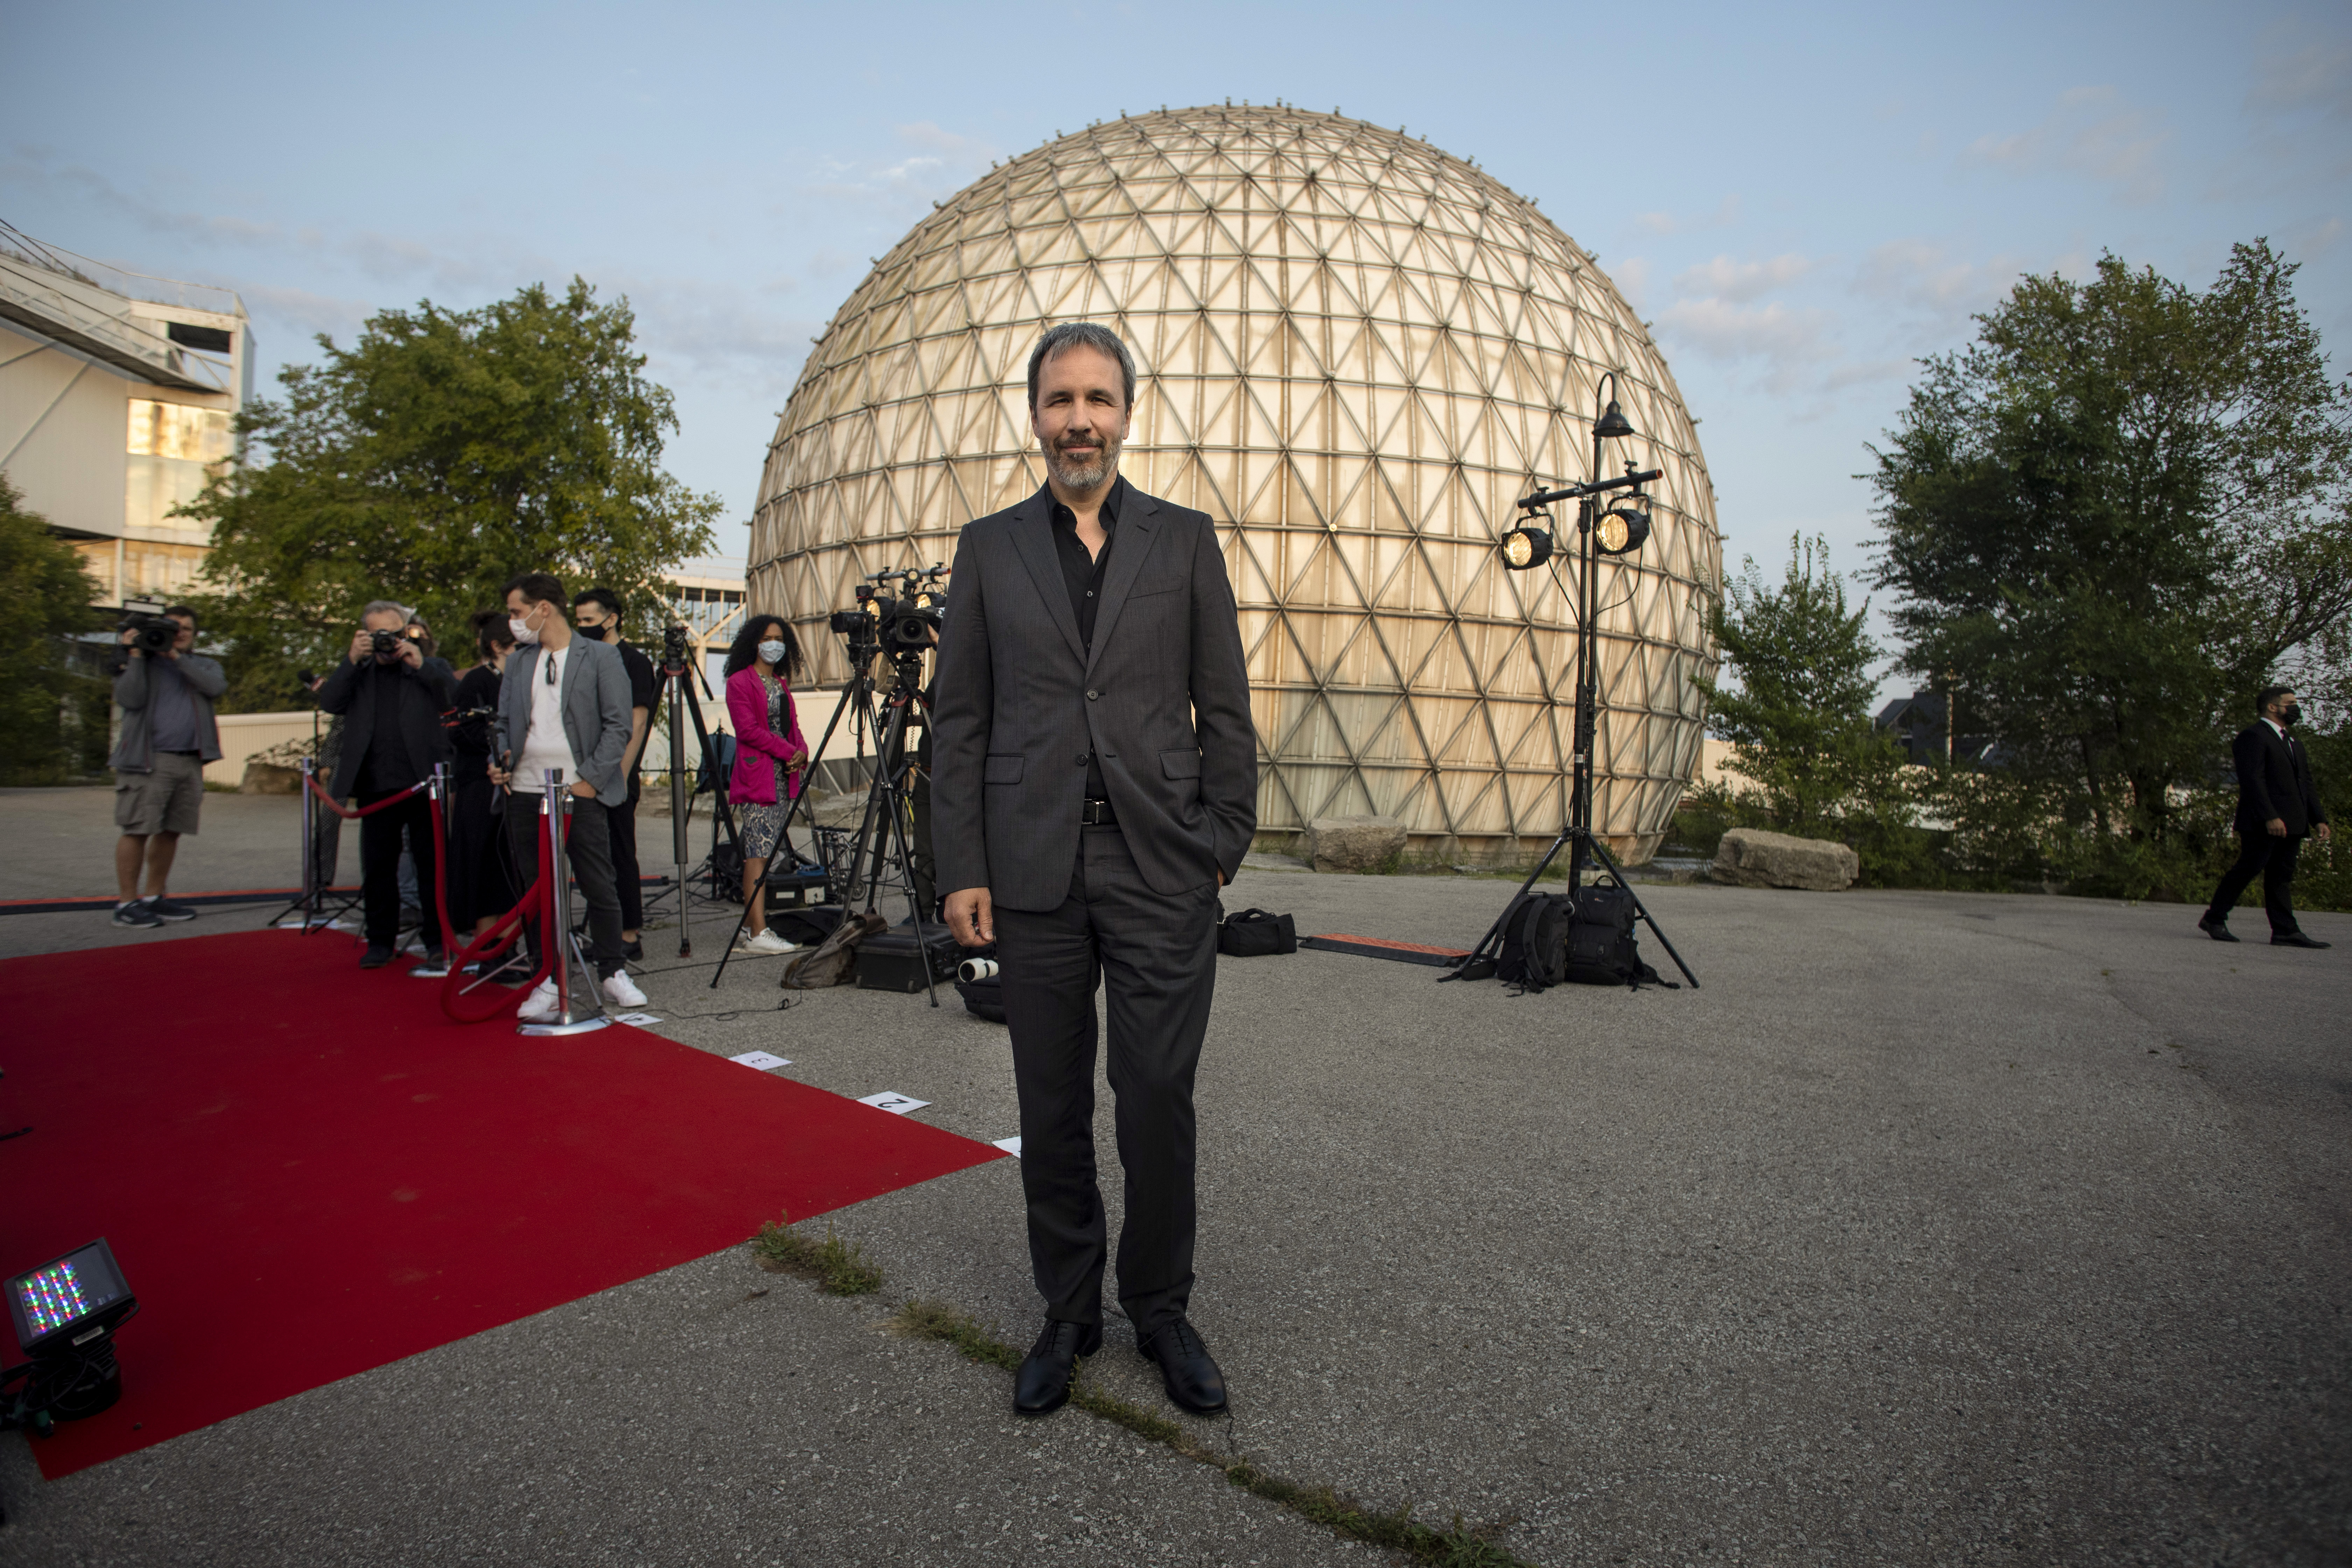 """Director Denis Villeneuve poses for a photo as he promotes the film """"Dune"""" in Toronto during the Toronto International Film Festival, on Saturday, September 11, 2021. (Chris Young/The Canadian Press via AP)"""